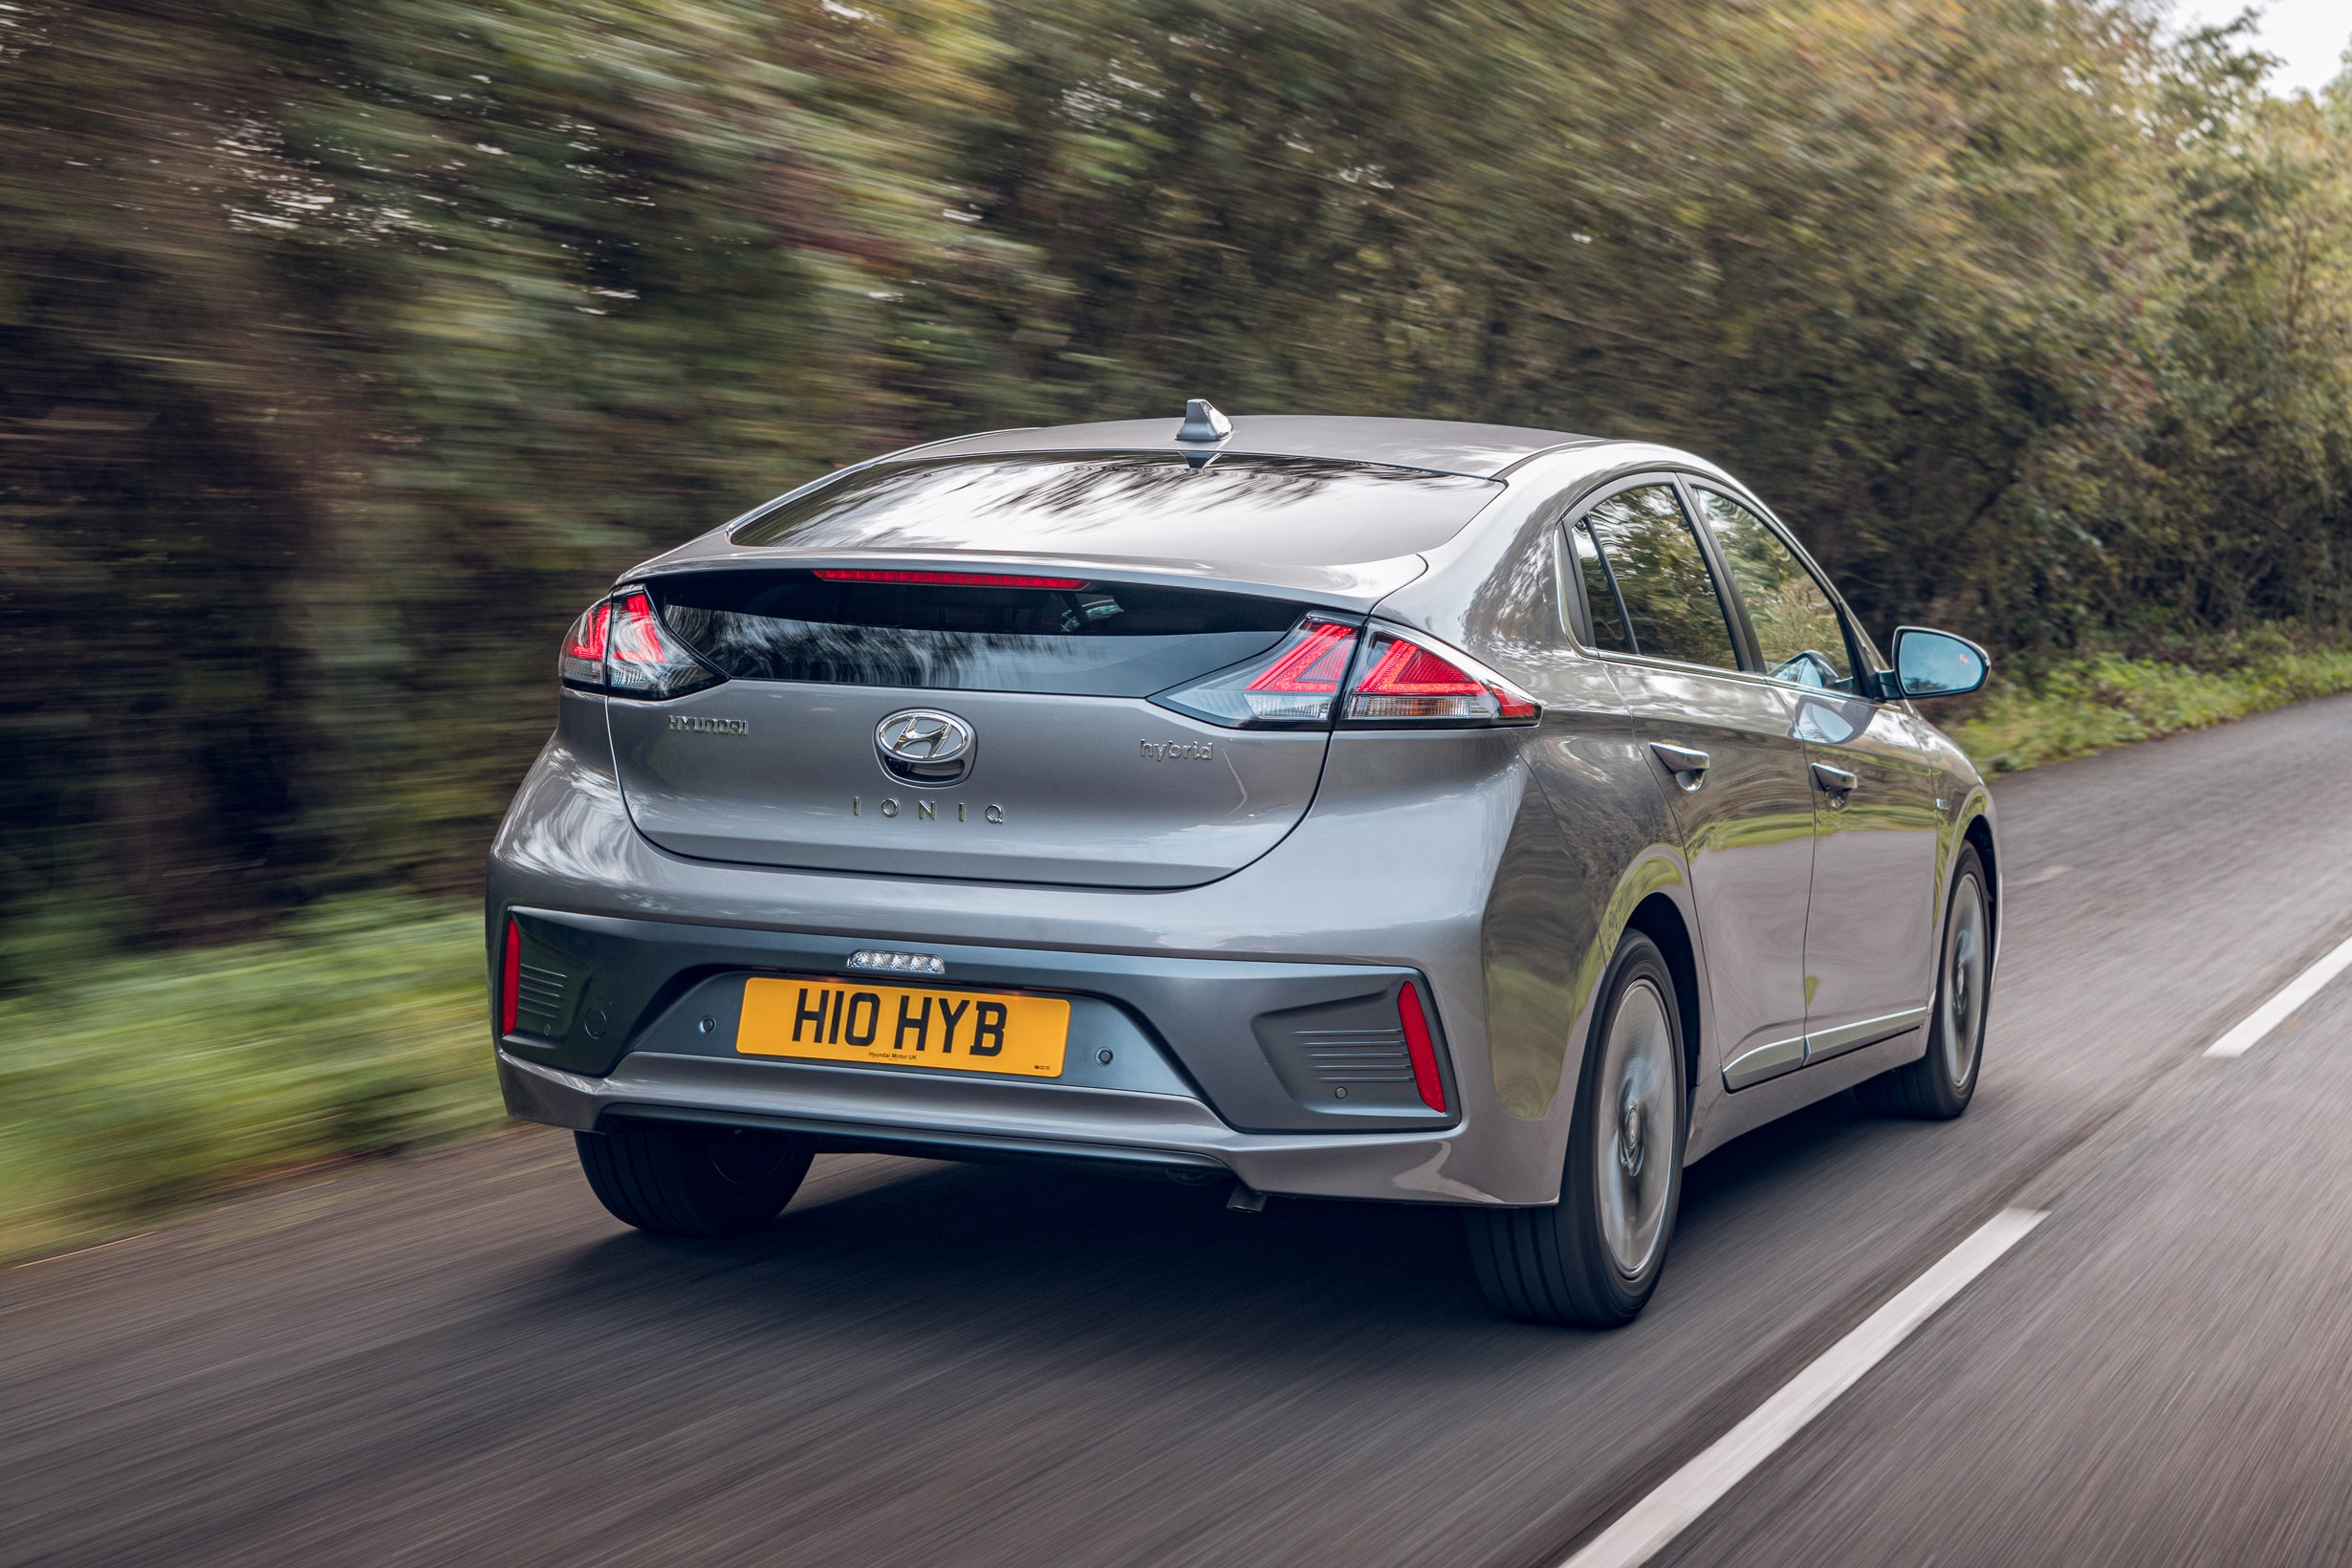 Hyundai Ioniq on road